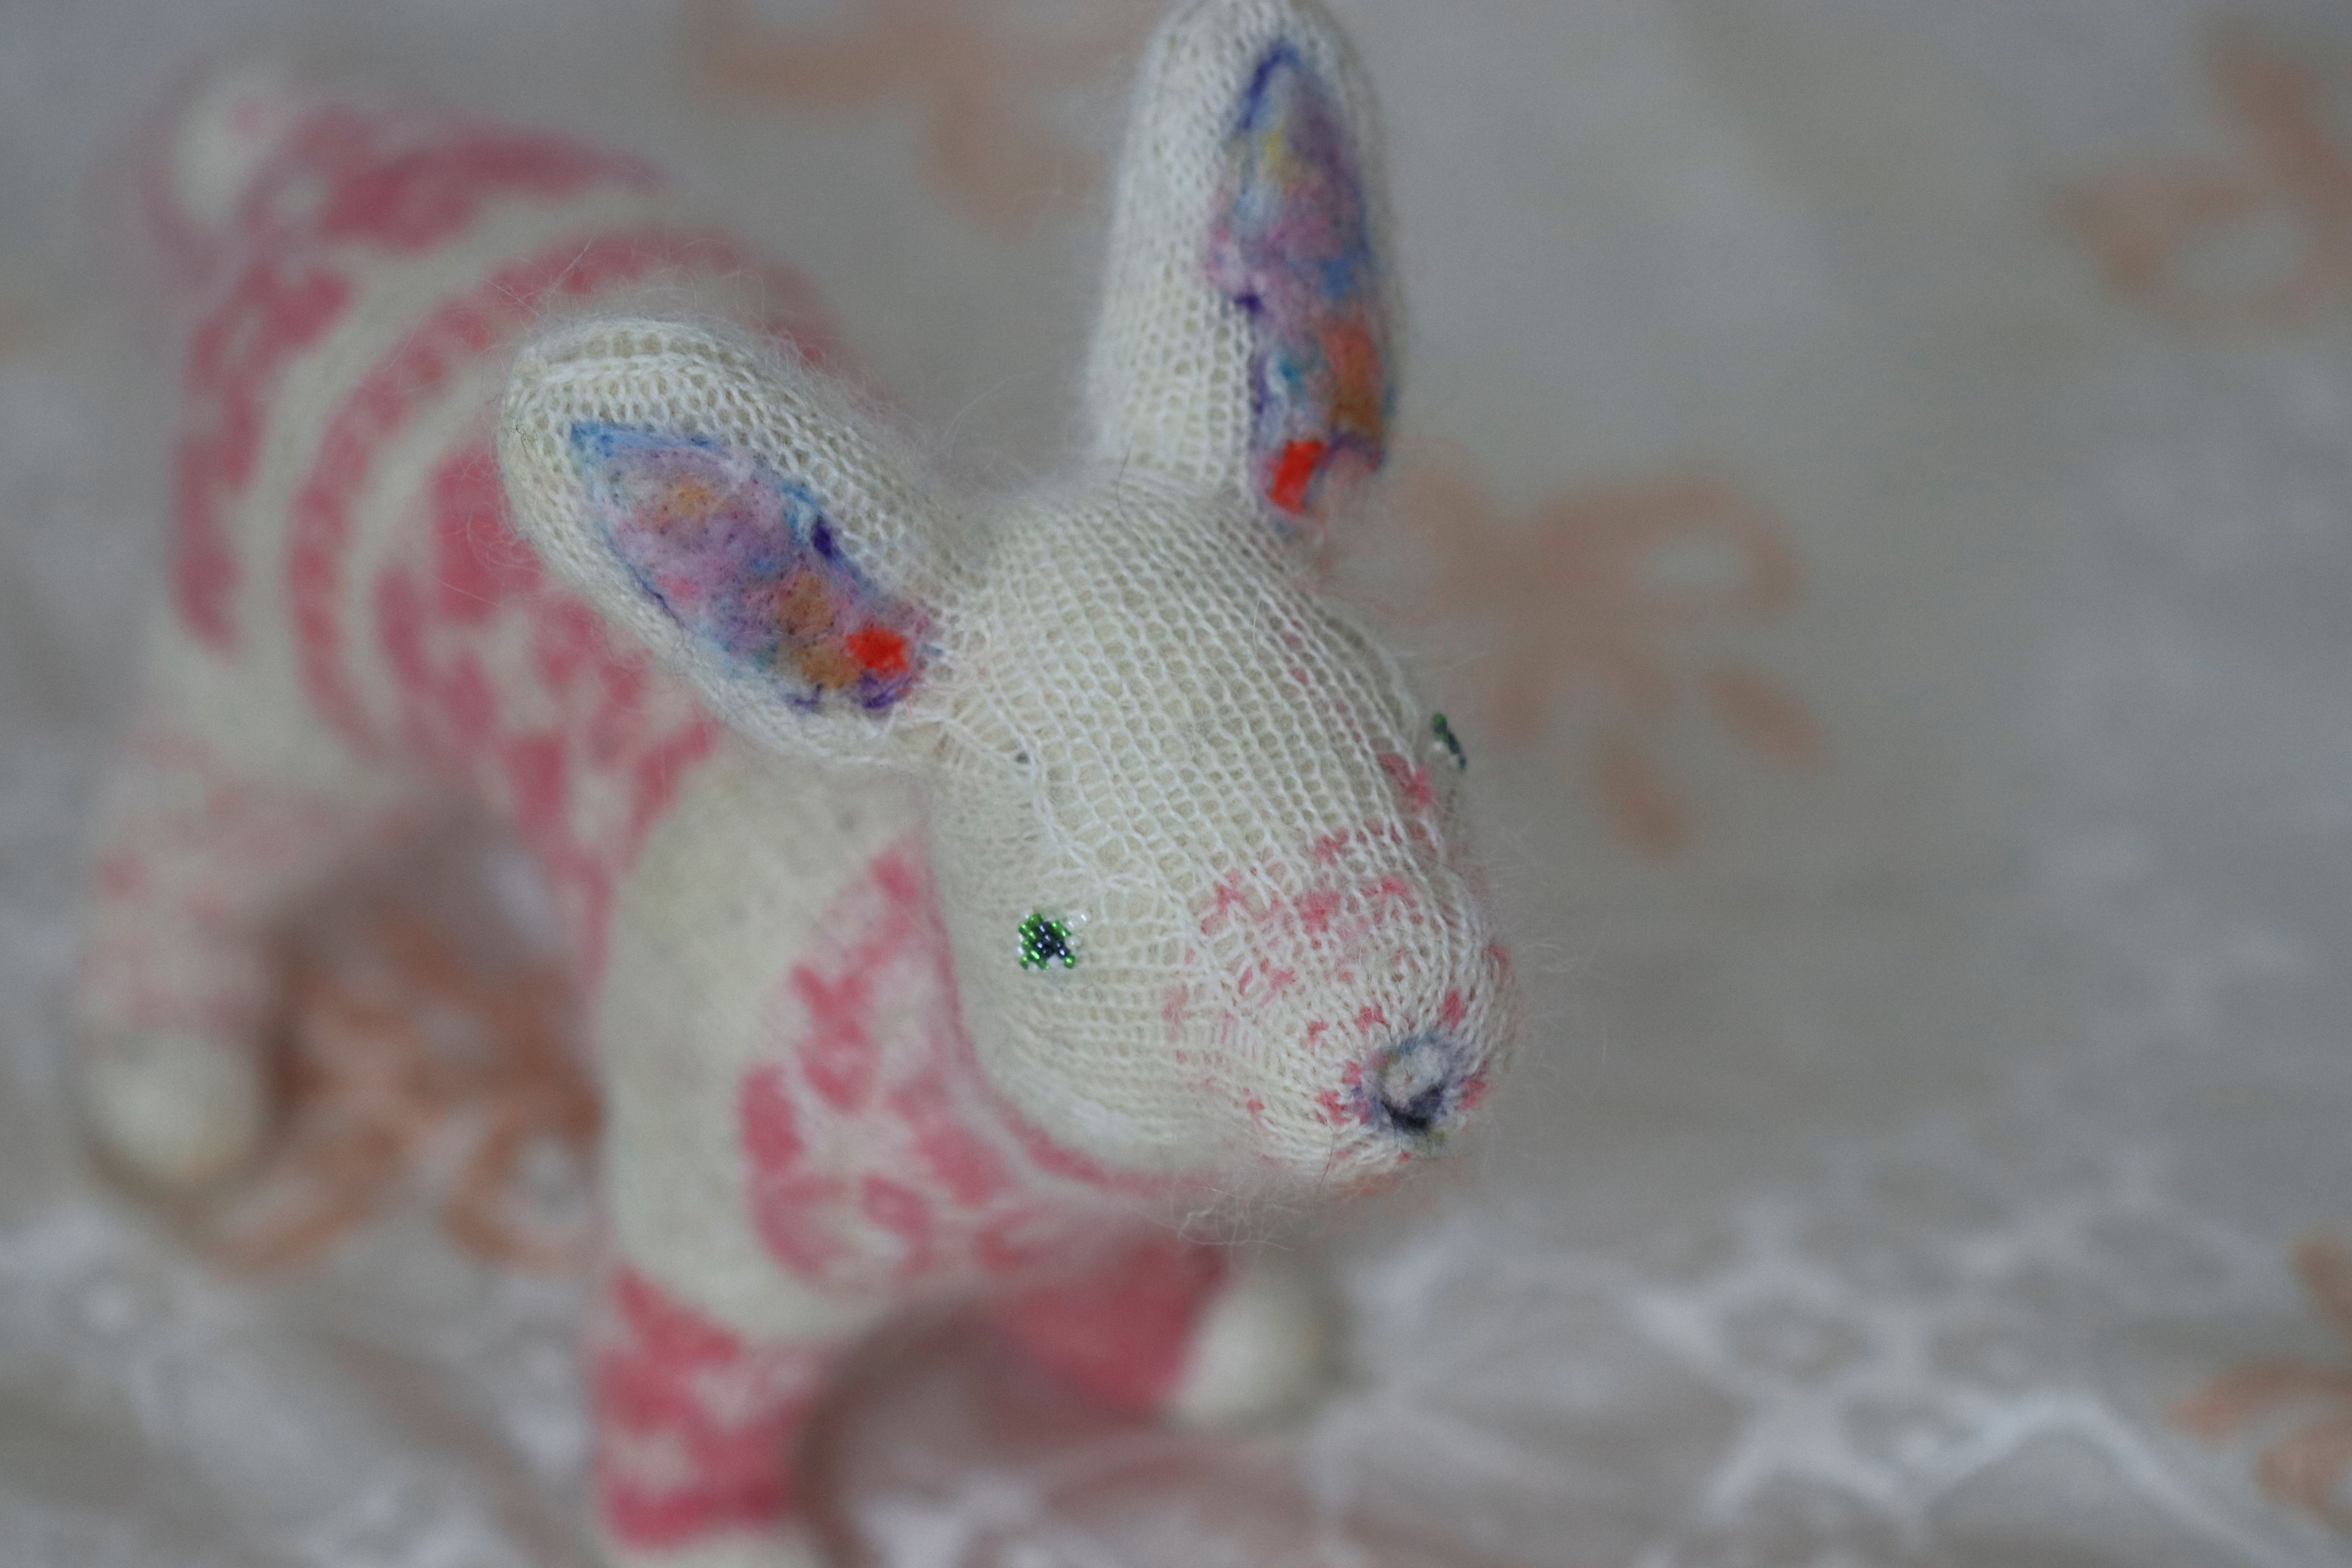 toy fiber felted needle white fox pink decoration gift stuffed sculpture stranded animal collectible kids knitted orgonite plush